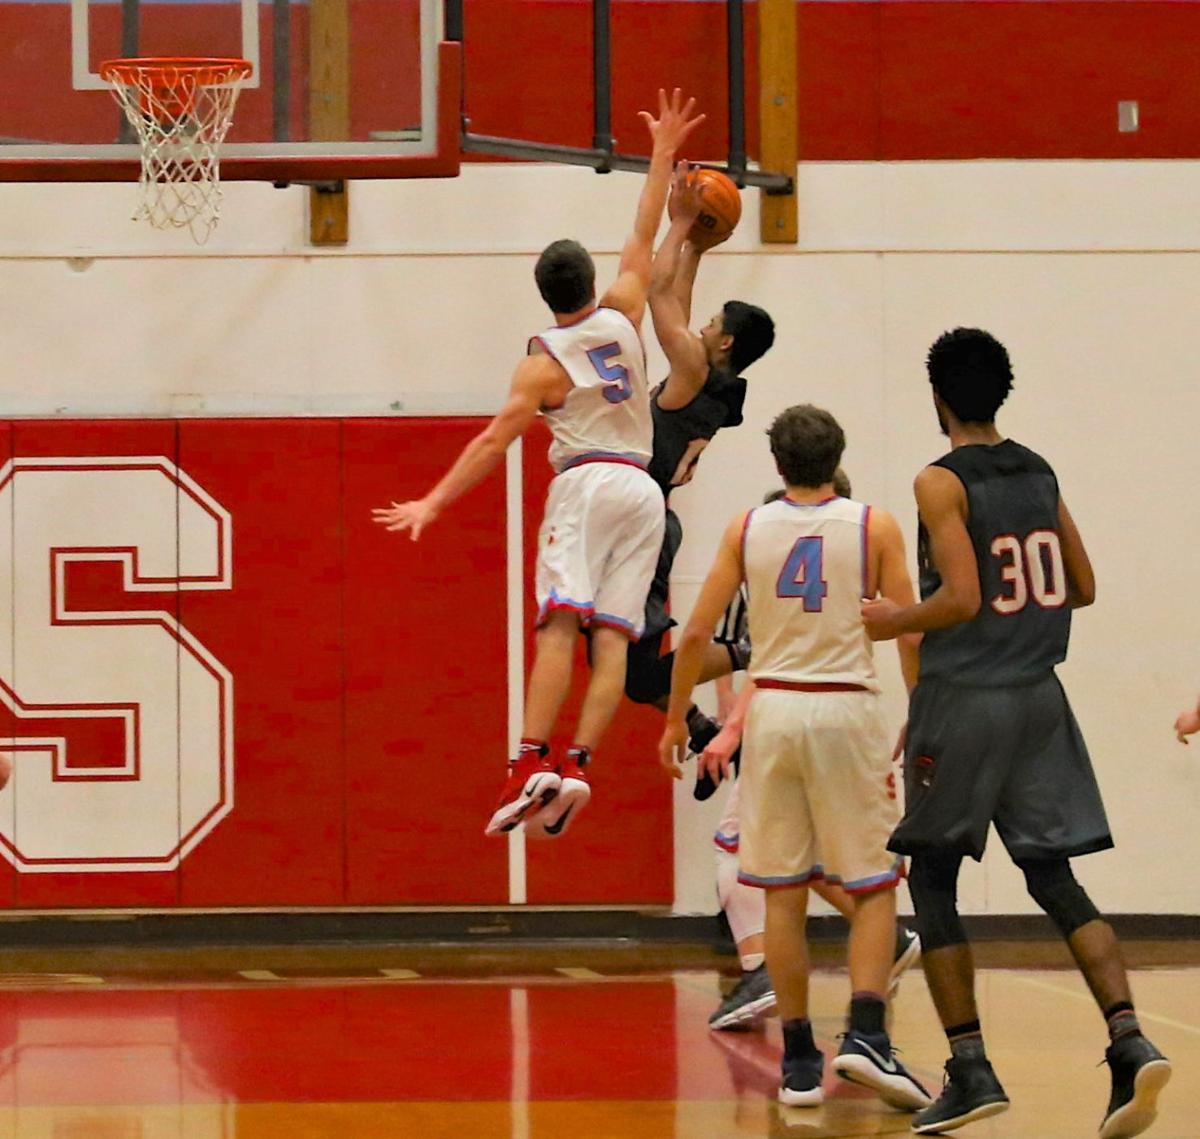 Boys basketball: Seaside tops Gladstone for trip to state tourney